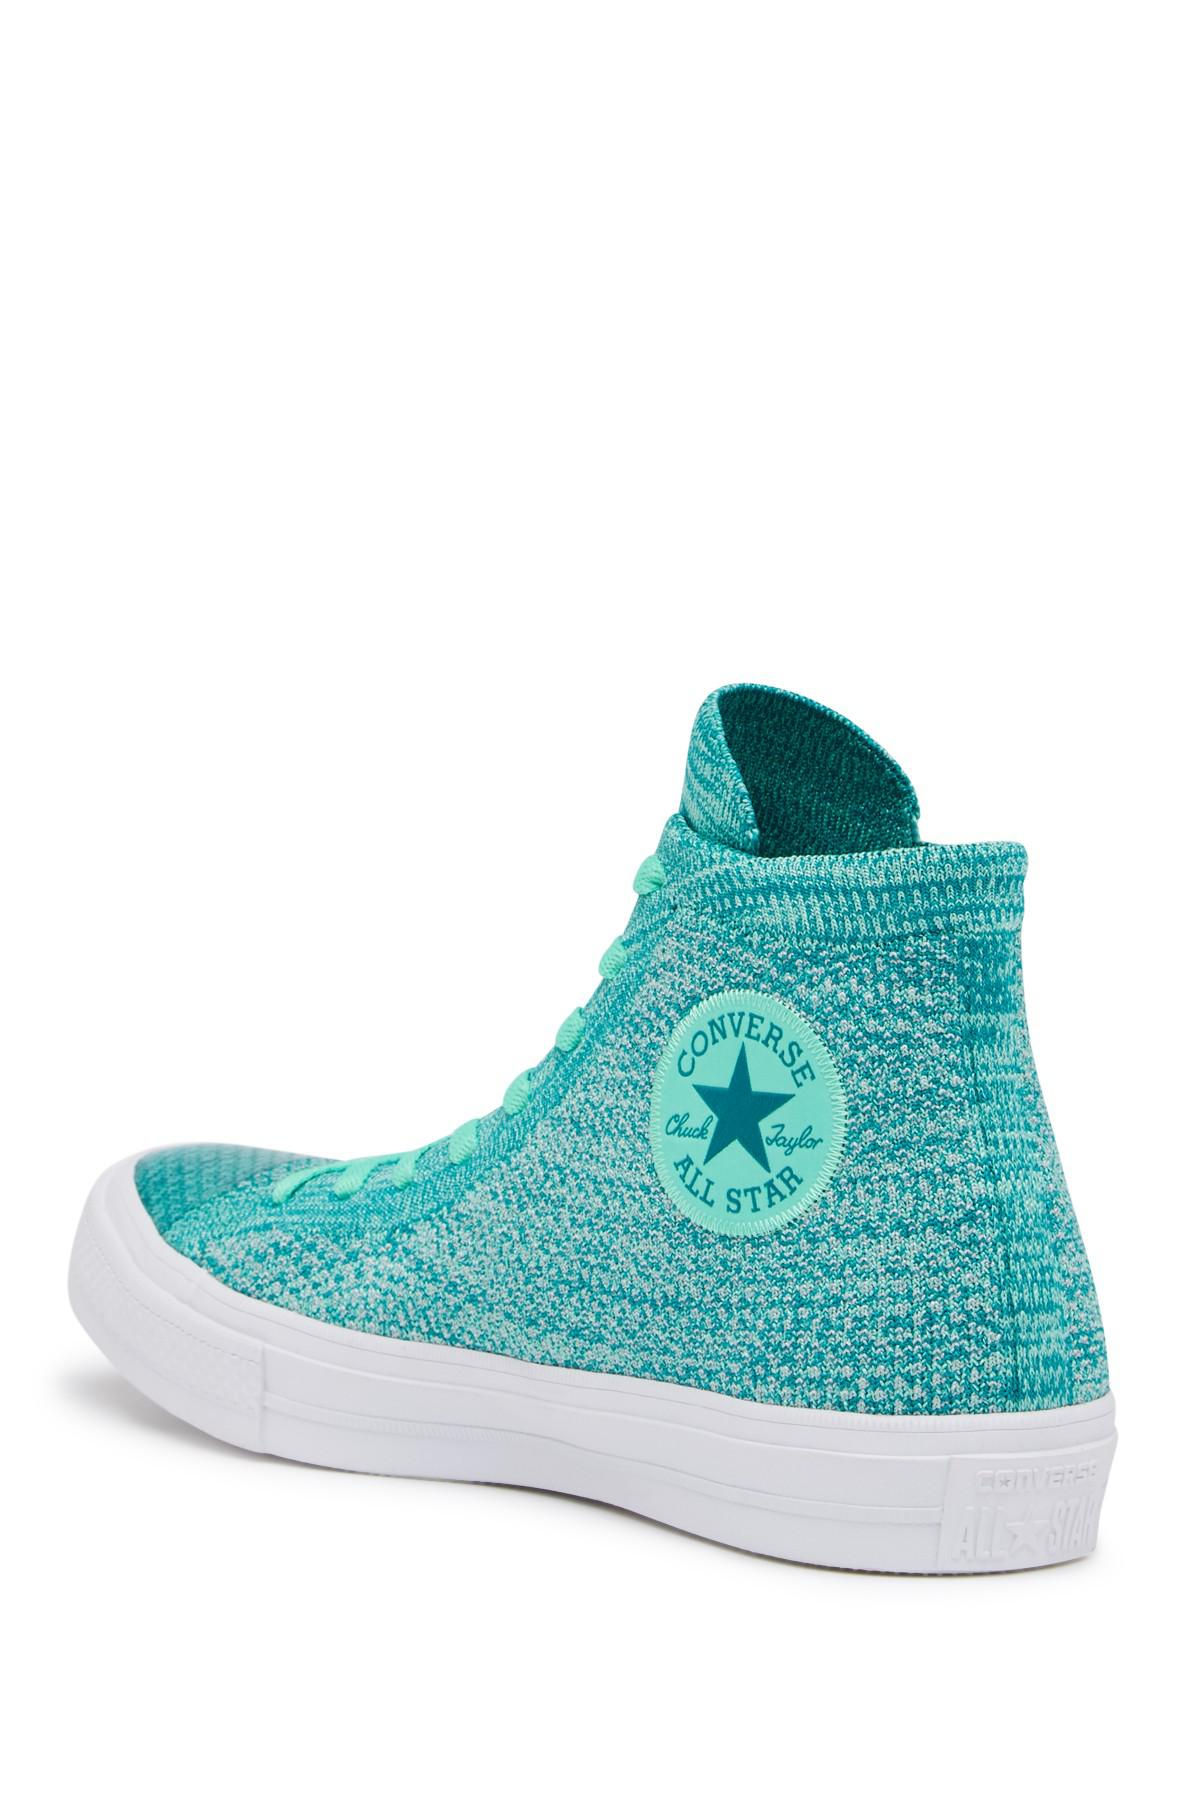 af8e209645cfc Gallery. Previously sold at  Nordstrom Rack · Women s Converse Chuck Taylor